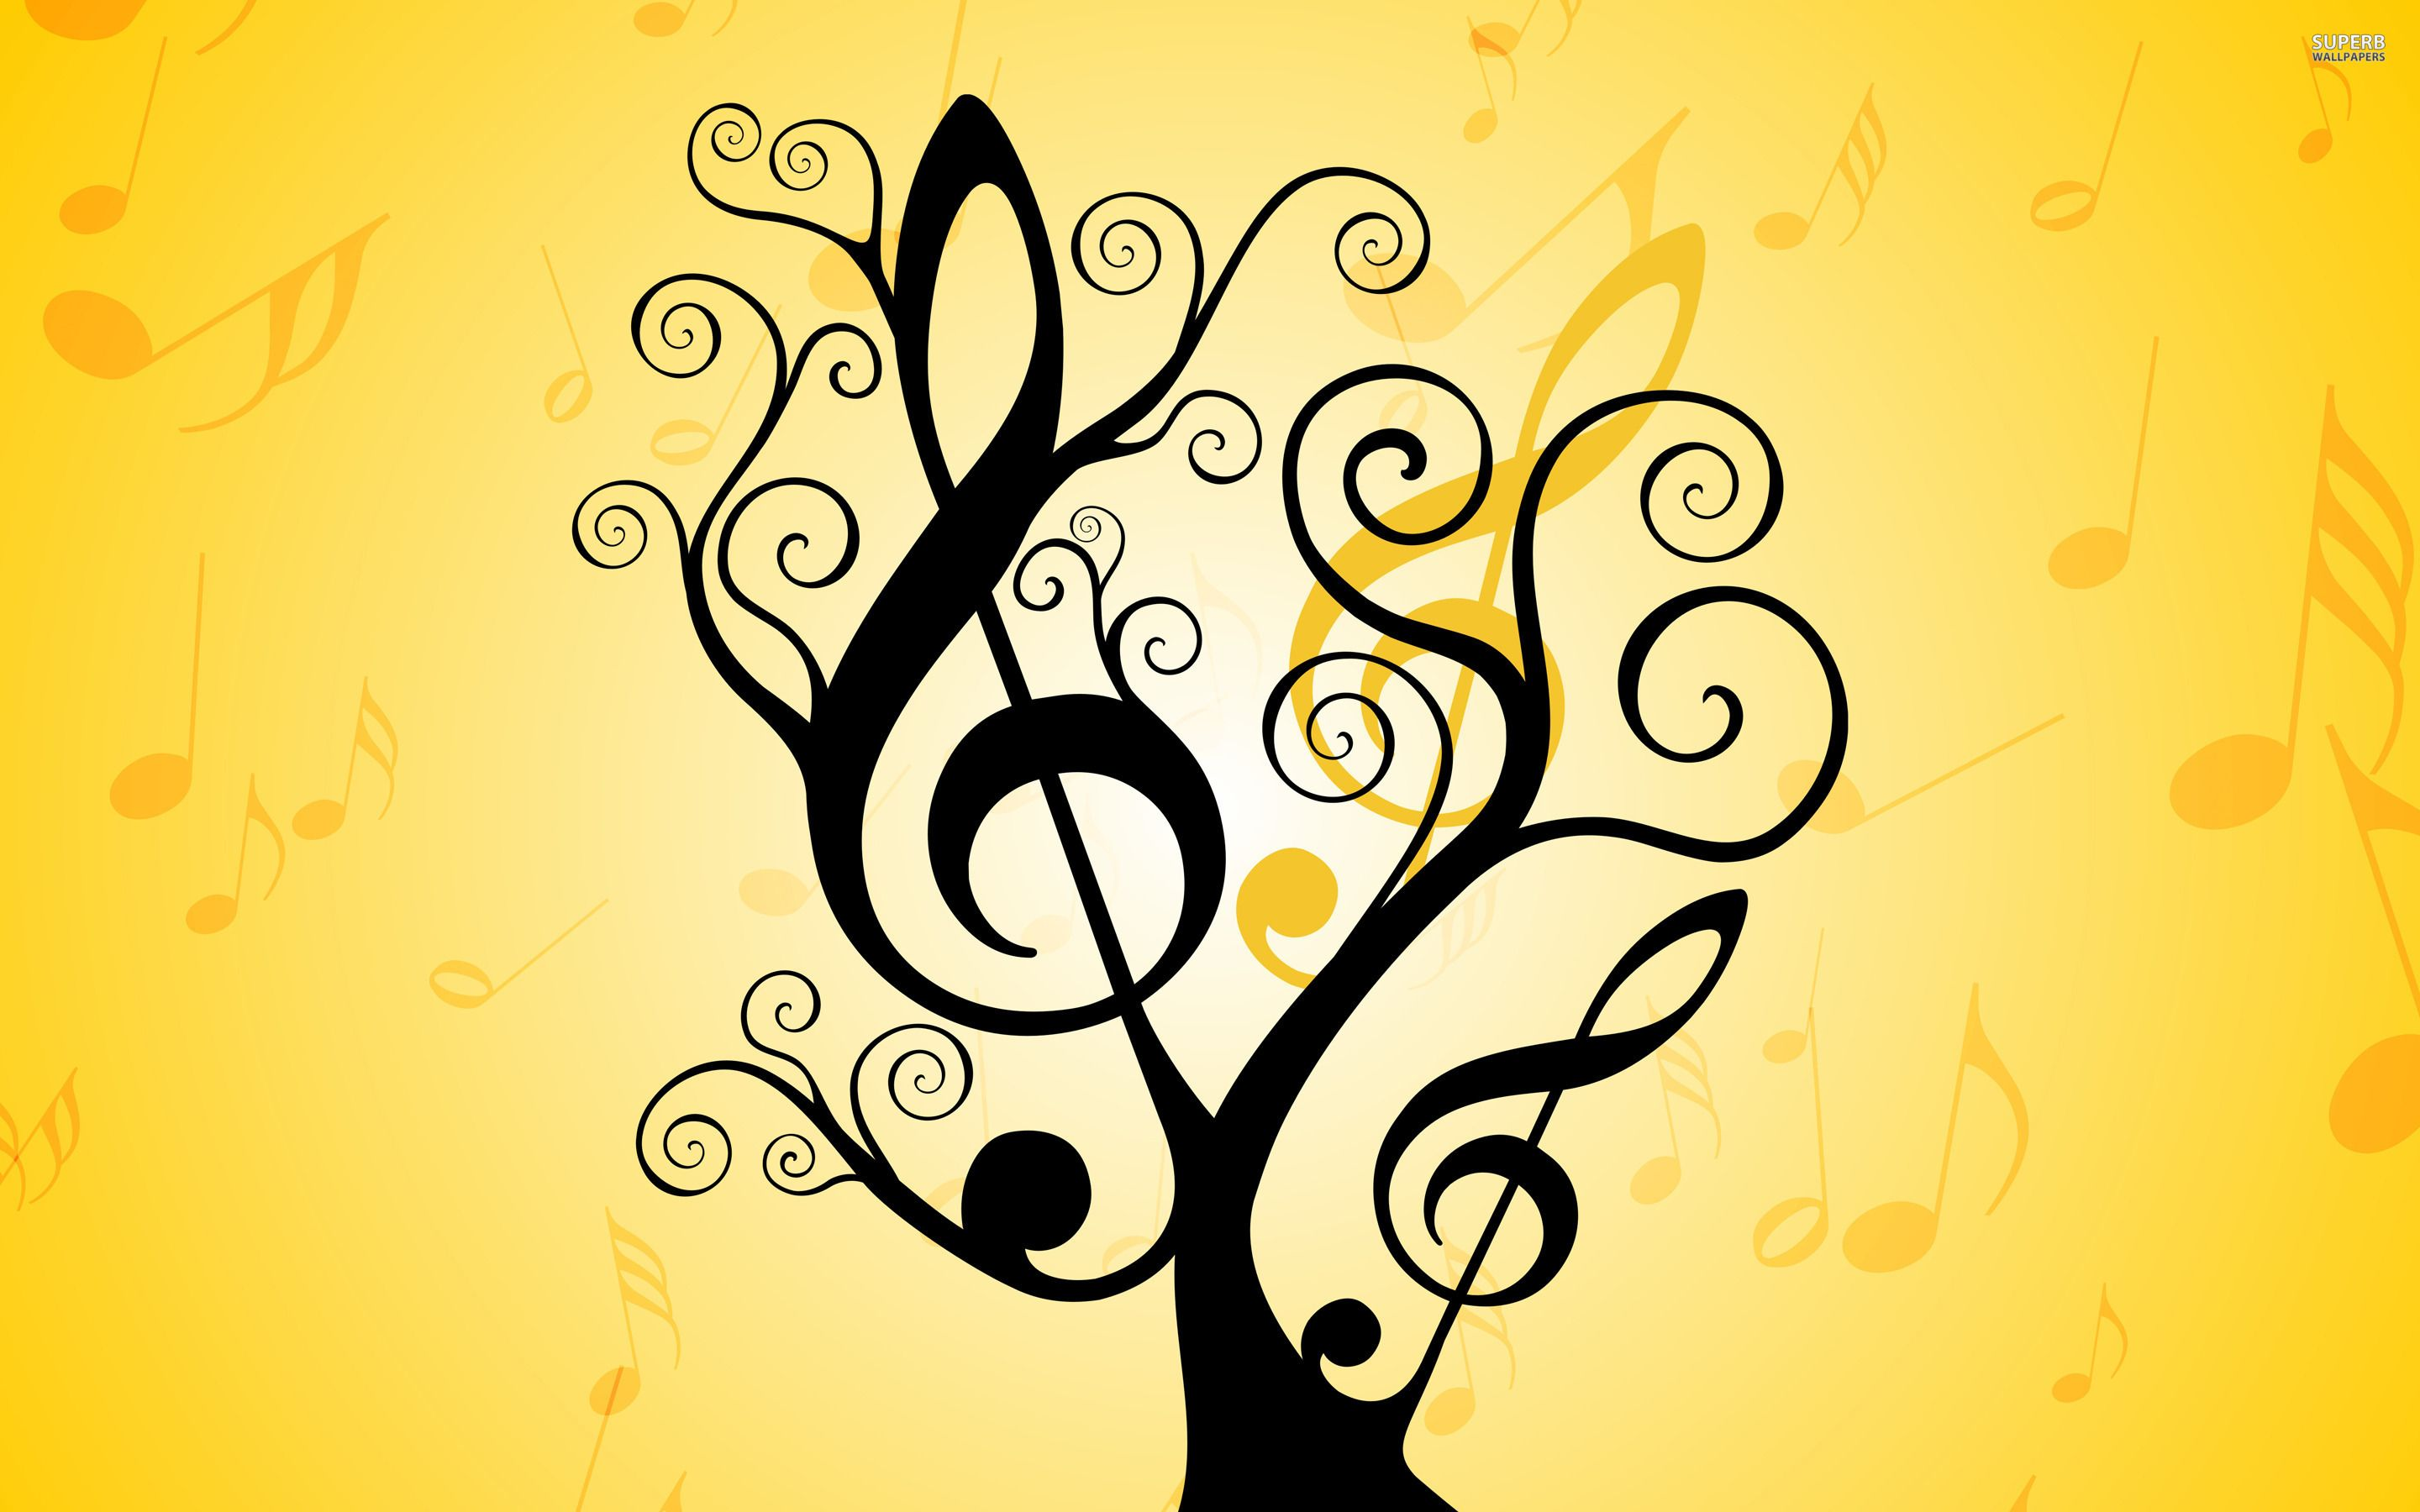 musical note with palm tree - Google Search | Art ideas | Pinterest